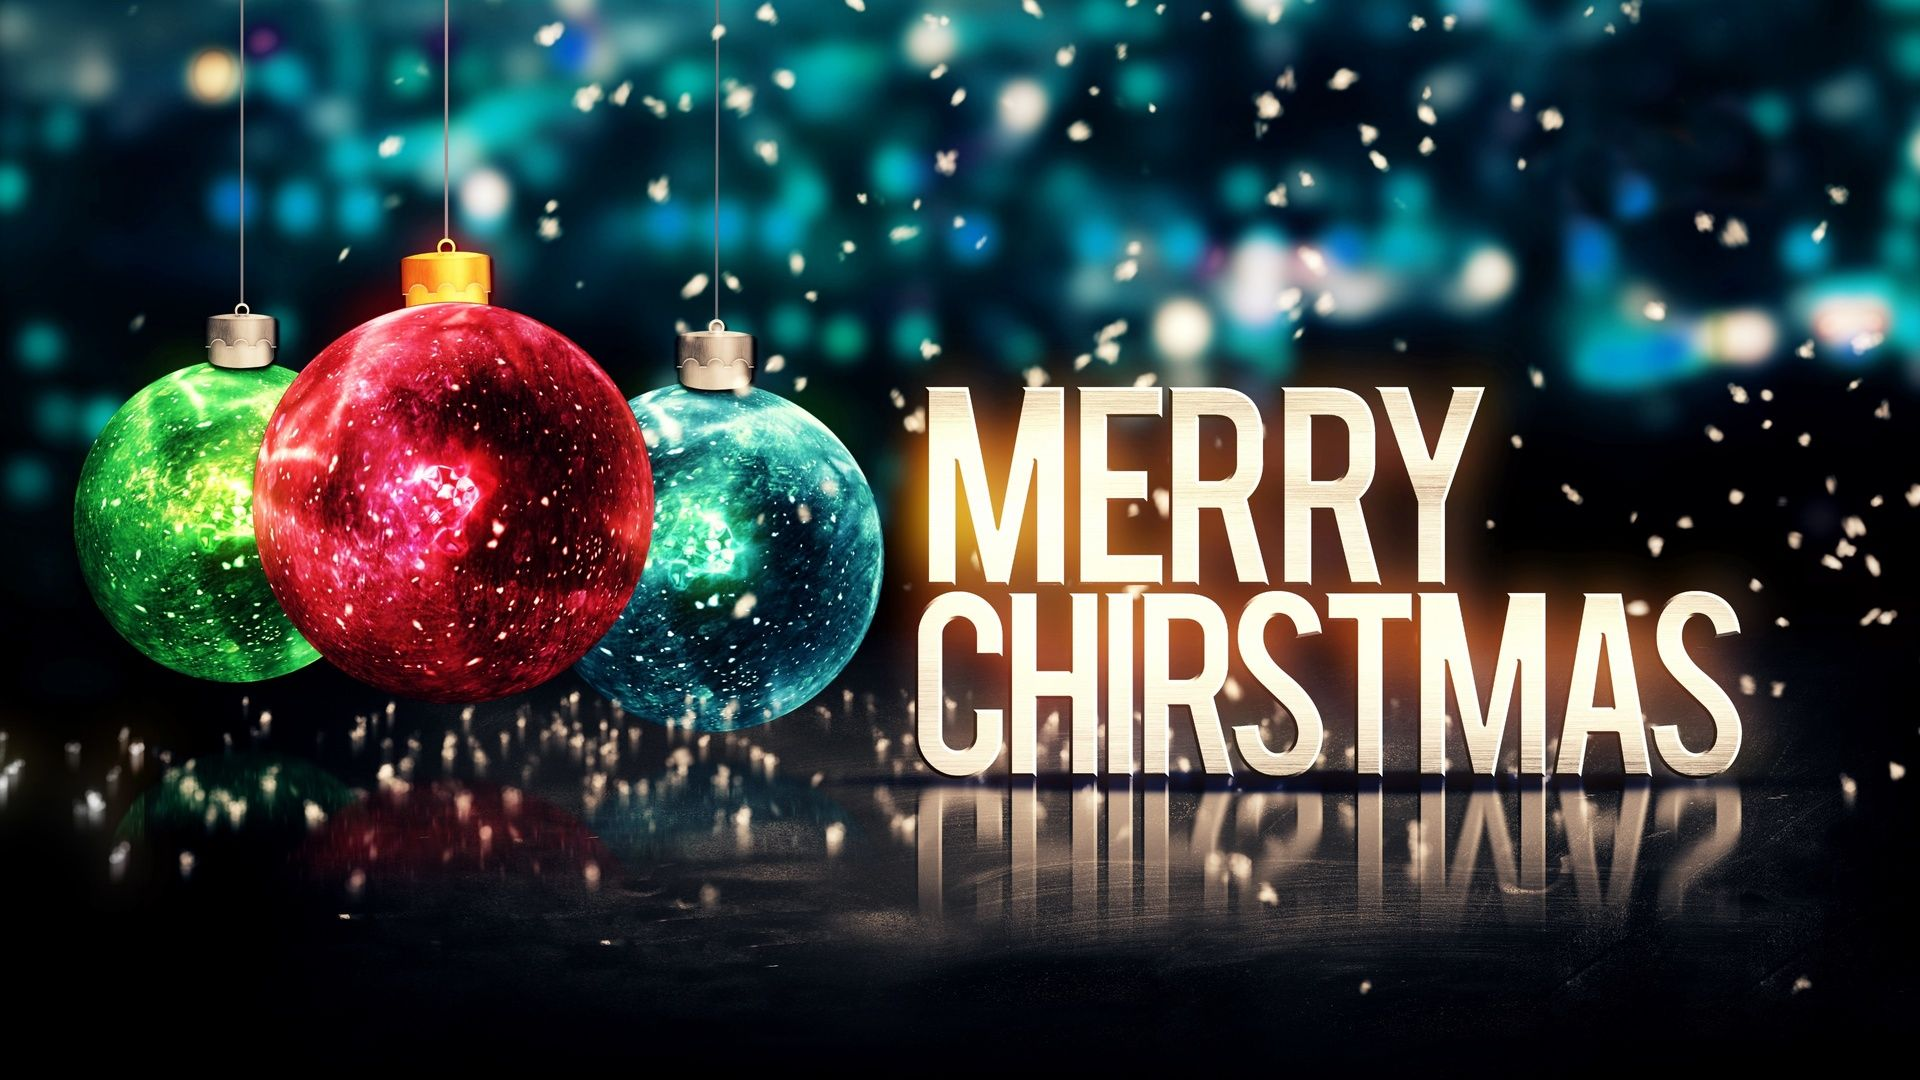 Merry Christmas Background 4k Ultra Hd Wallpaper 4k Christmas Hd Wallpapers 80 Images In 2020 Merry Christmas Wallpaper Merry Christmas Images Merry Christmas Wishes